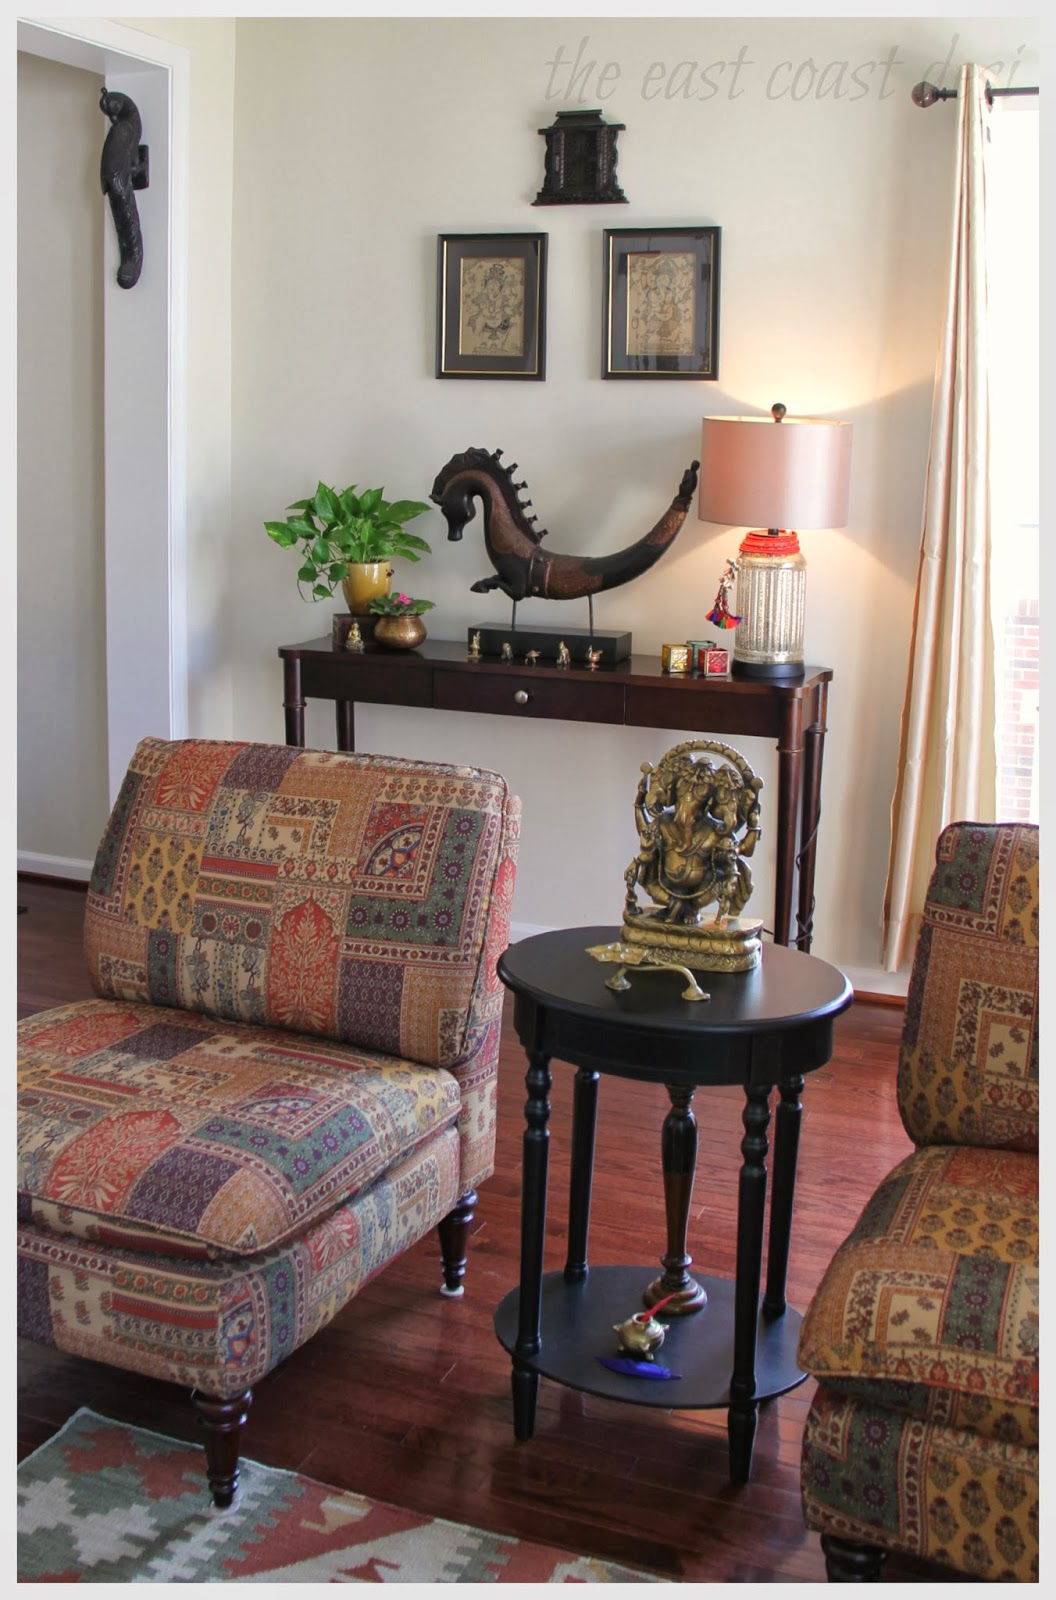 The east coast desi my living room a reflection of india for Simple home decor ideas indian